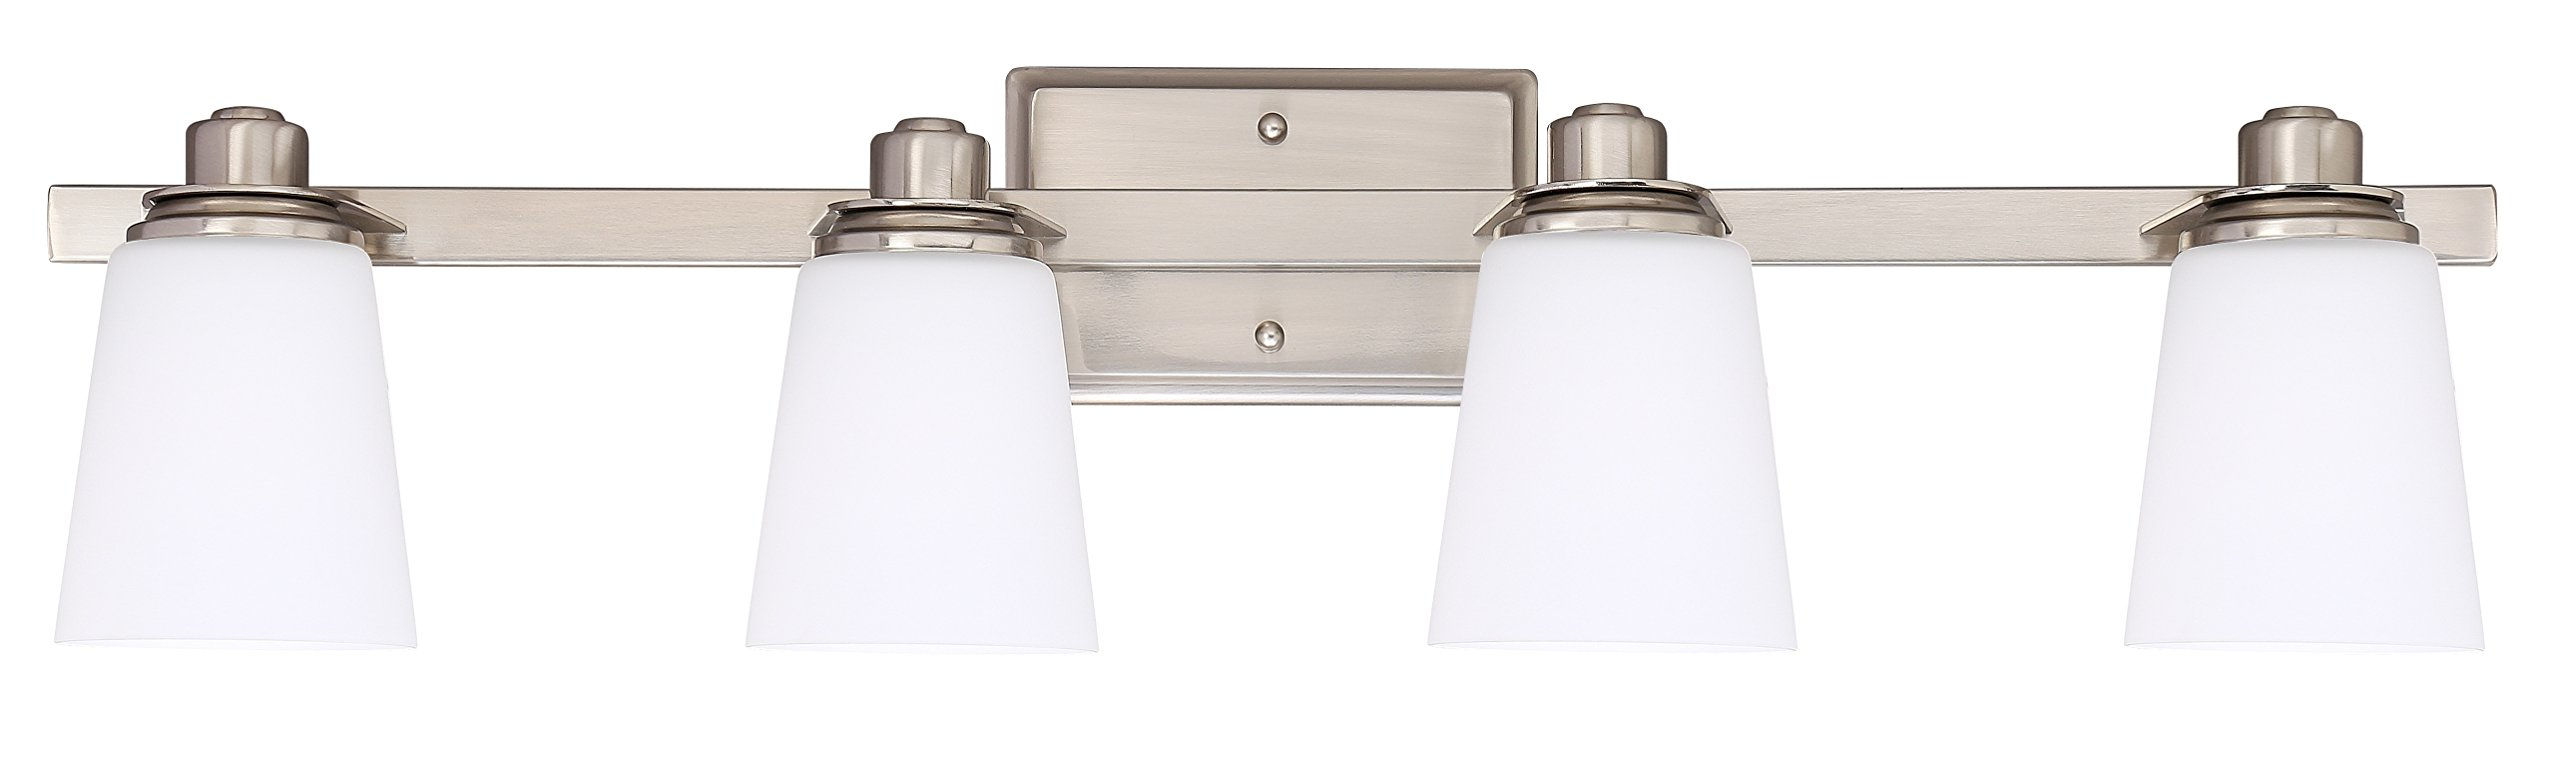 Bathroom Vanity Light Fixture,4-Light Wall Sconce with Opal Glass Shade,UL Listed,Brushed Nickel Finish